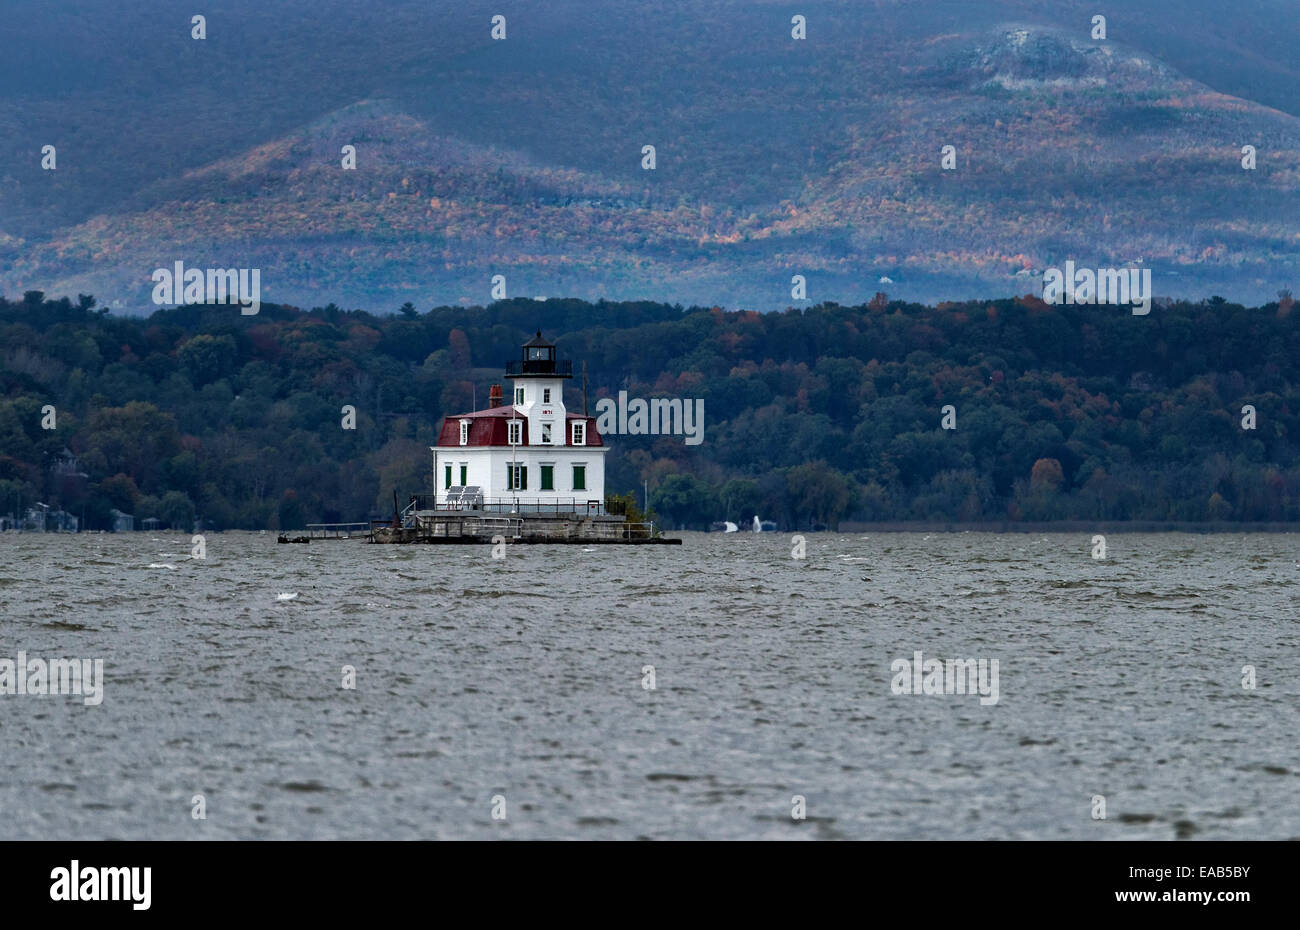 Esopus Meadows Lighthouse, Esopus, New York, USA - Stock Image